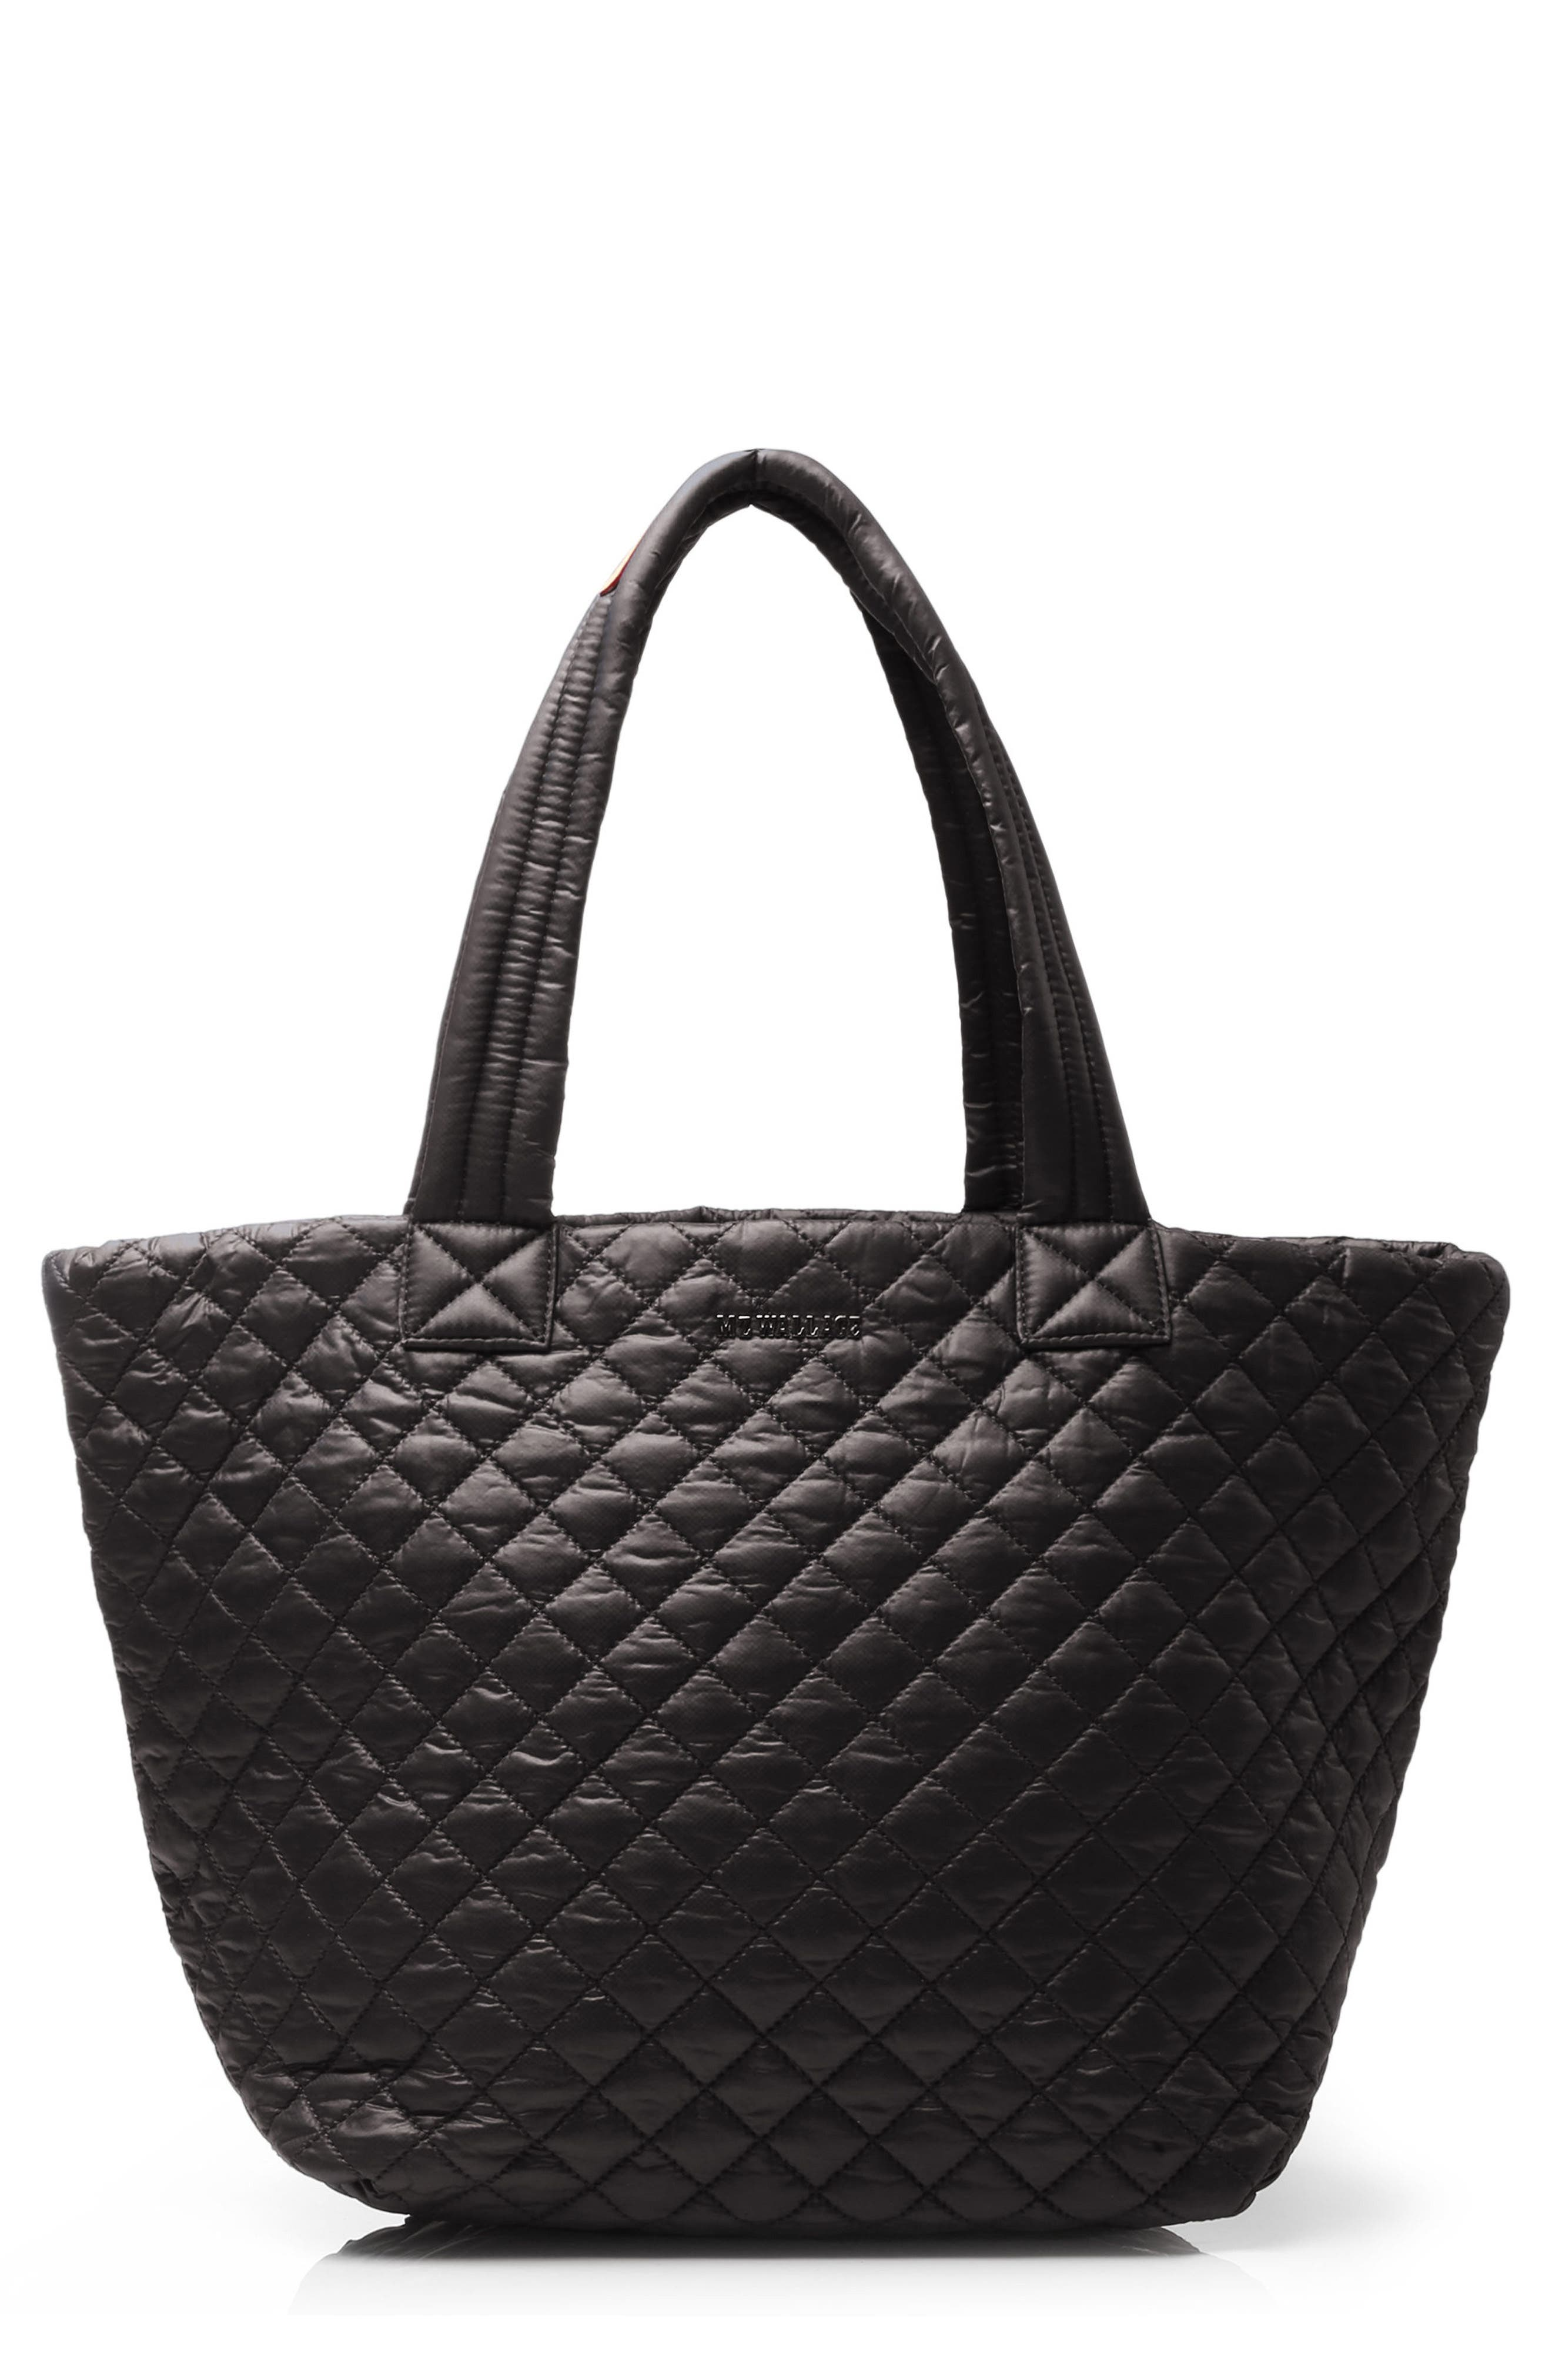 Medium Metro Tote,                         Main,                         color, BLACK